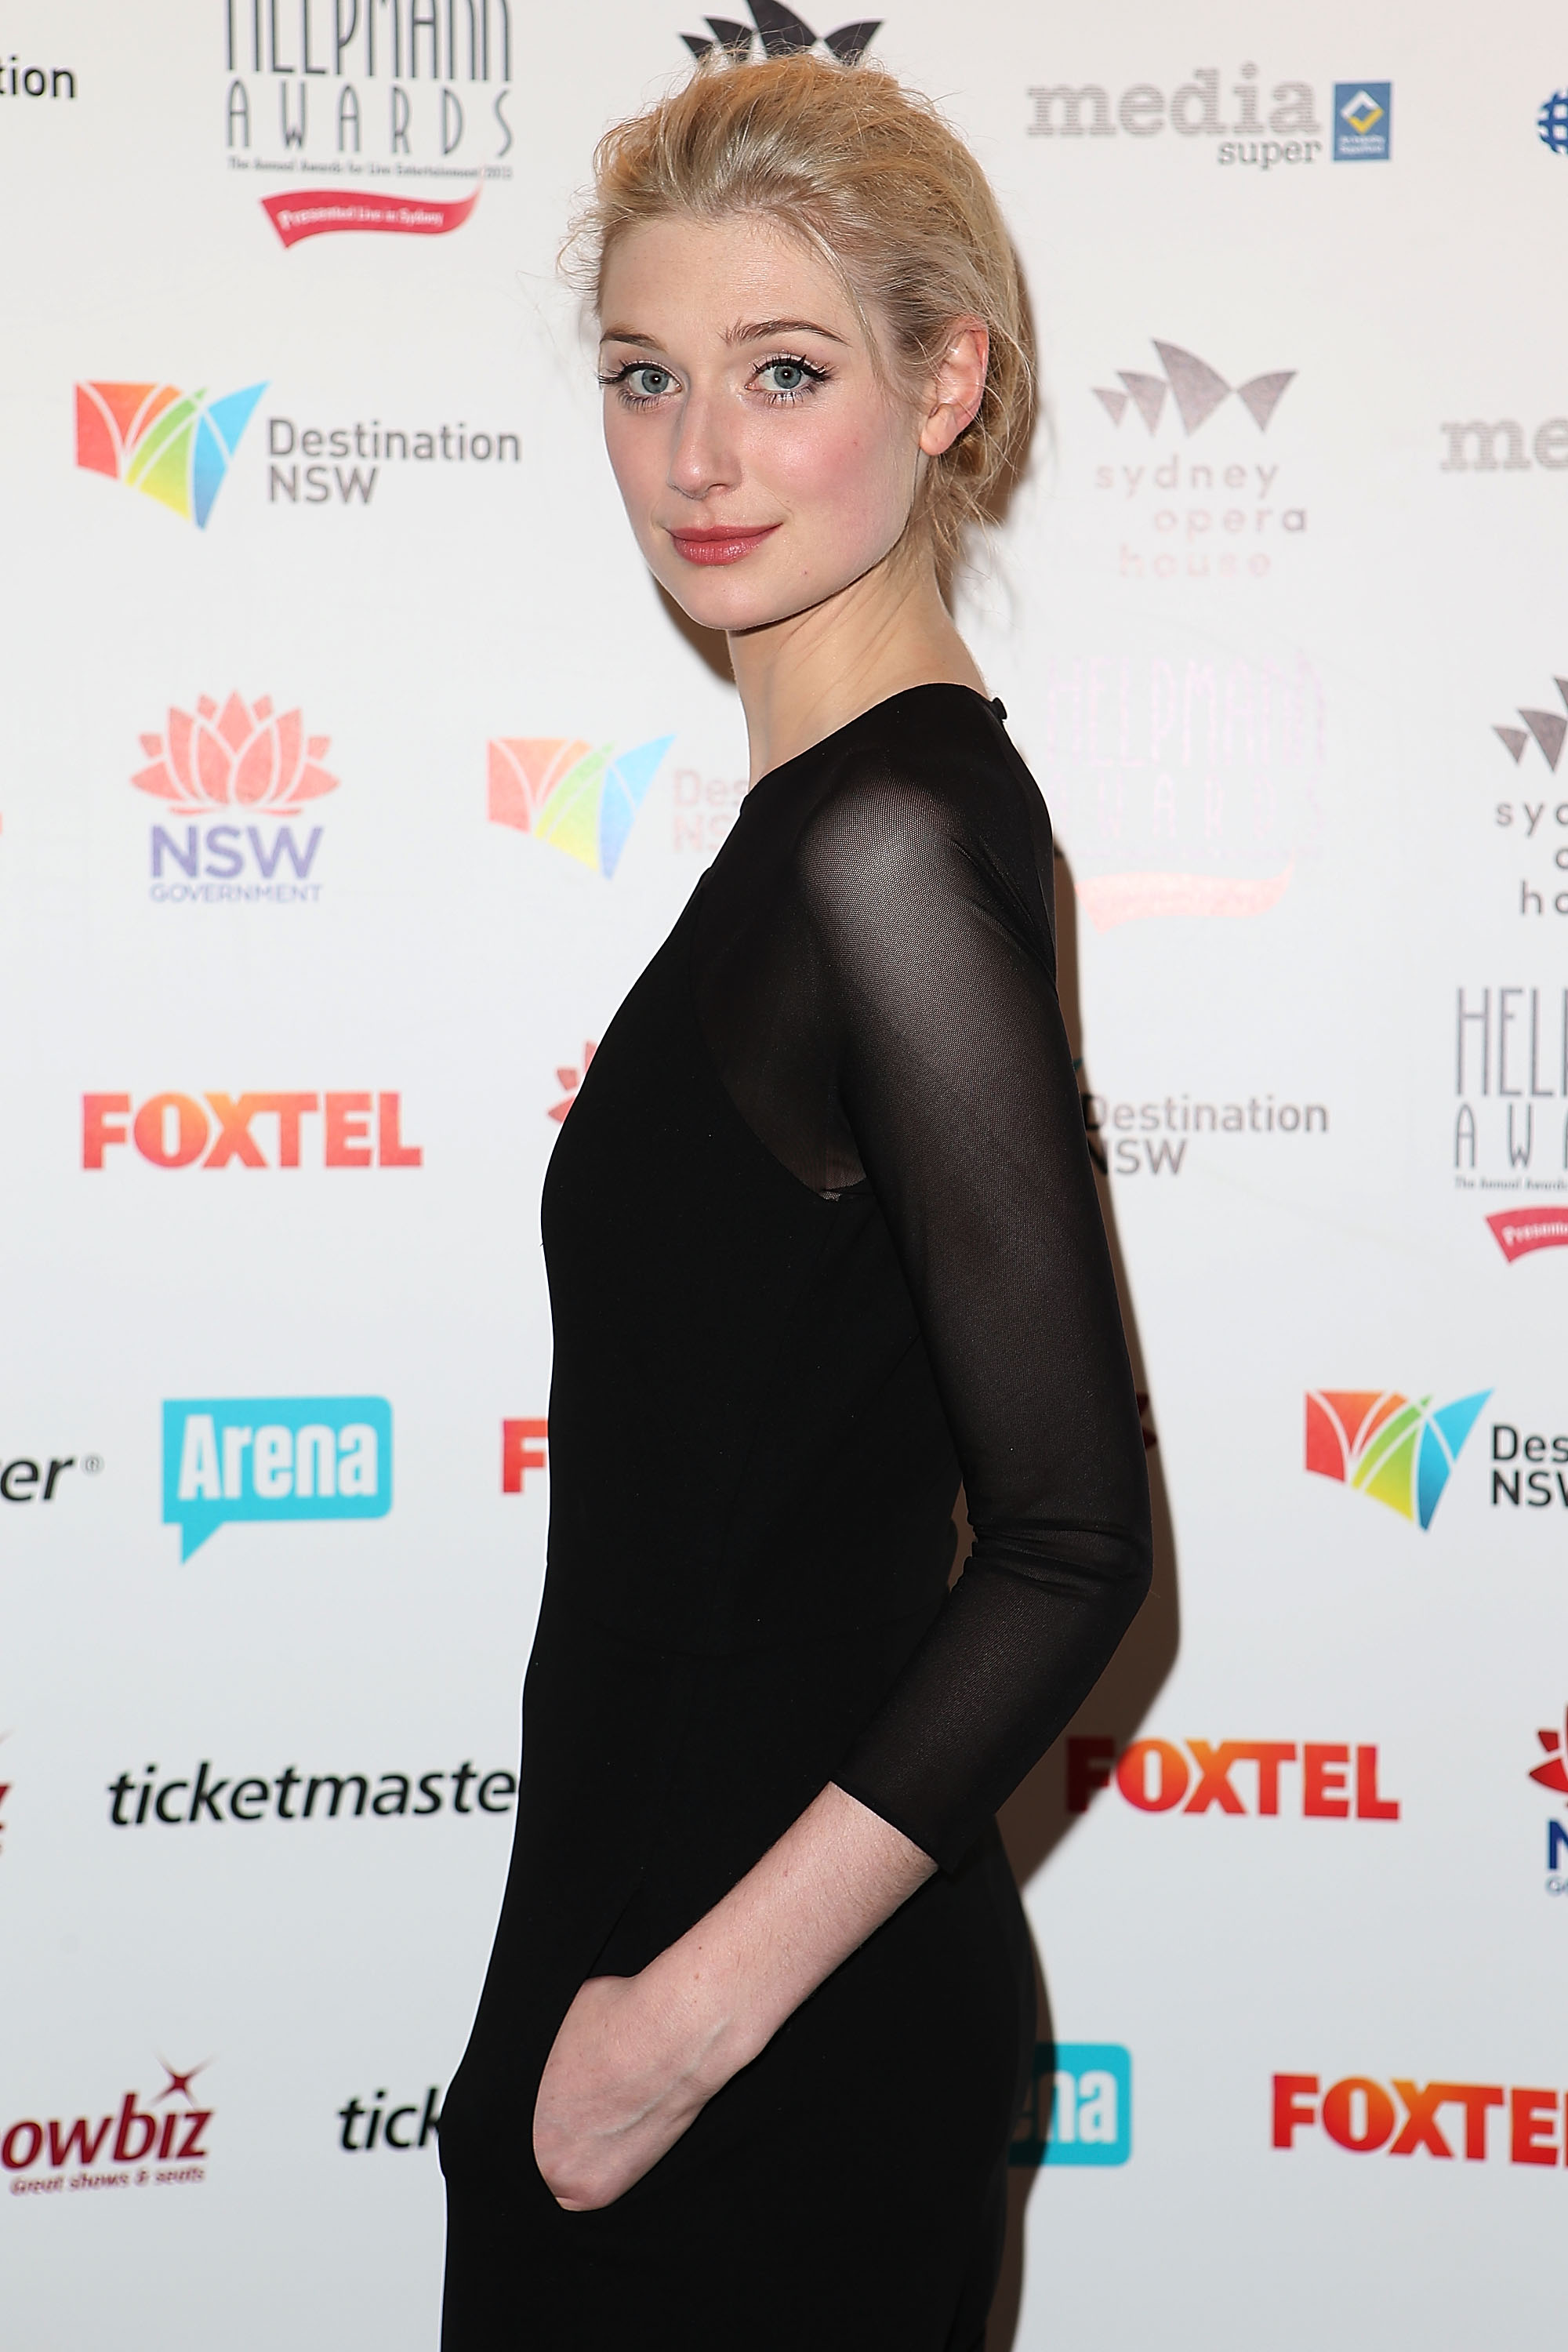 SYDNEY, AUSTRALIA - JULY 29: Elizabeth Debicki arrives at the 2013 Helpmann Awards at the Sydney Opera House on July 29, 2013 in Sydney, Australia. (Photo by Brendon Thorne/Getty Images)